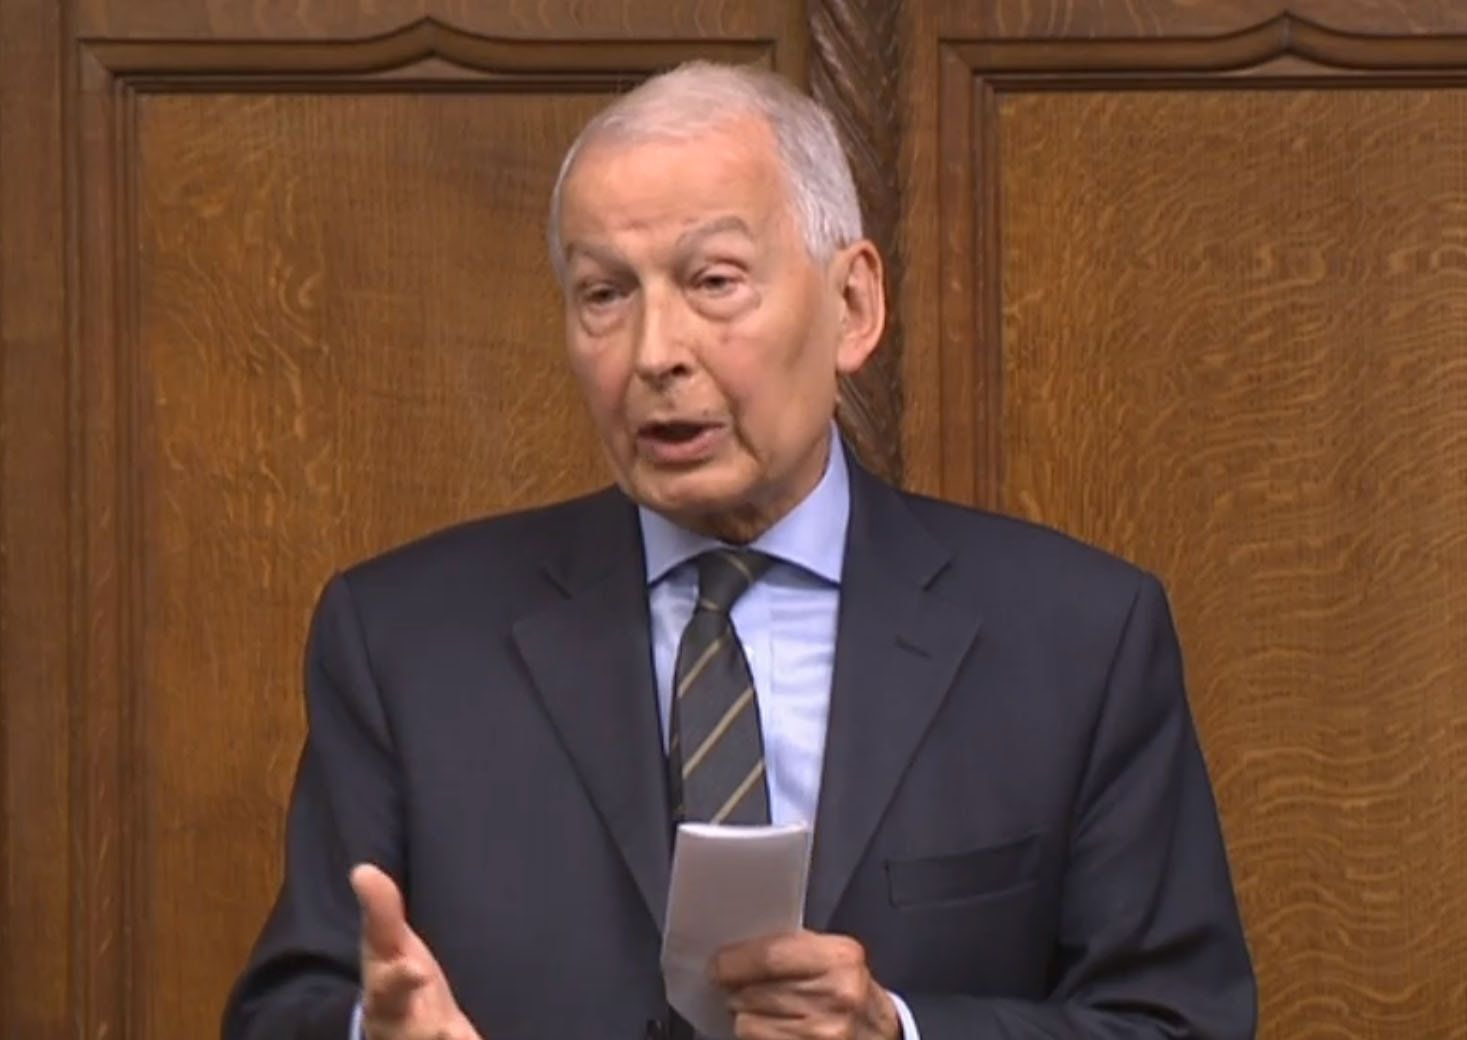 Frank Field wants to end 'mass exploitation of workers'.